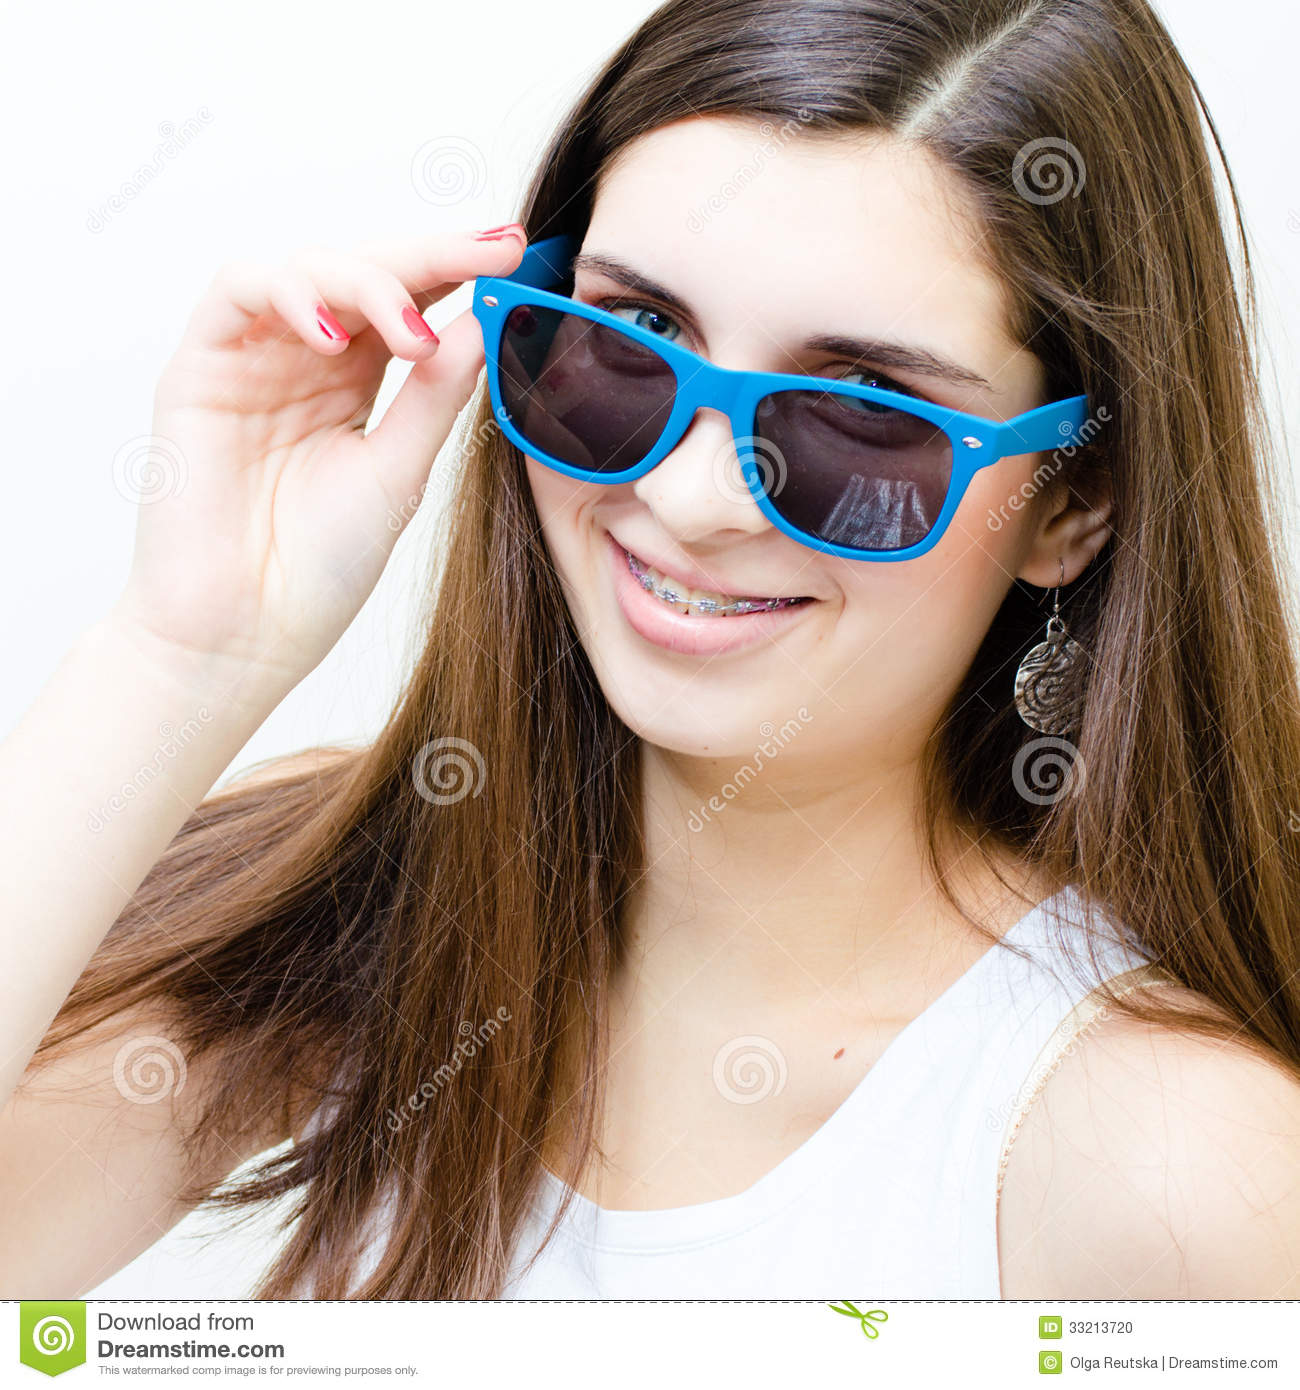 Something is. sunglasses for teen girls sorry